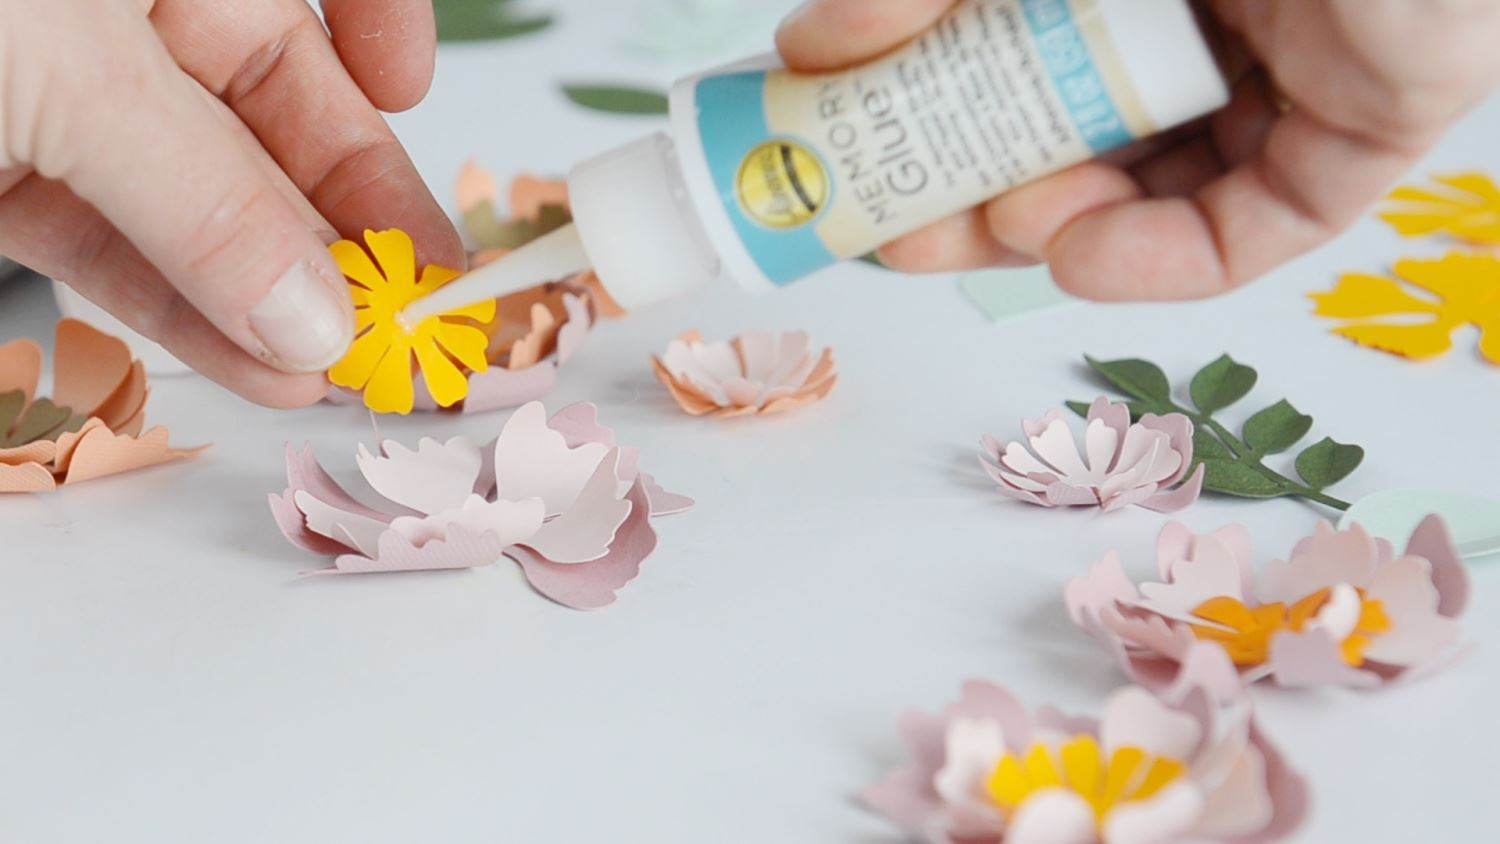 Begin gluing layers of flowers together